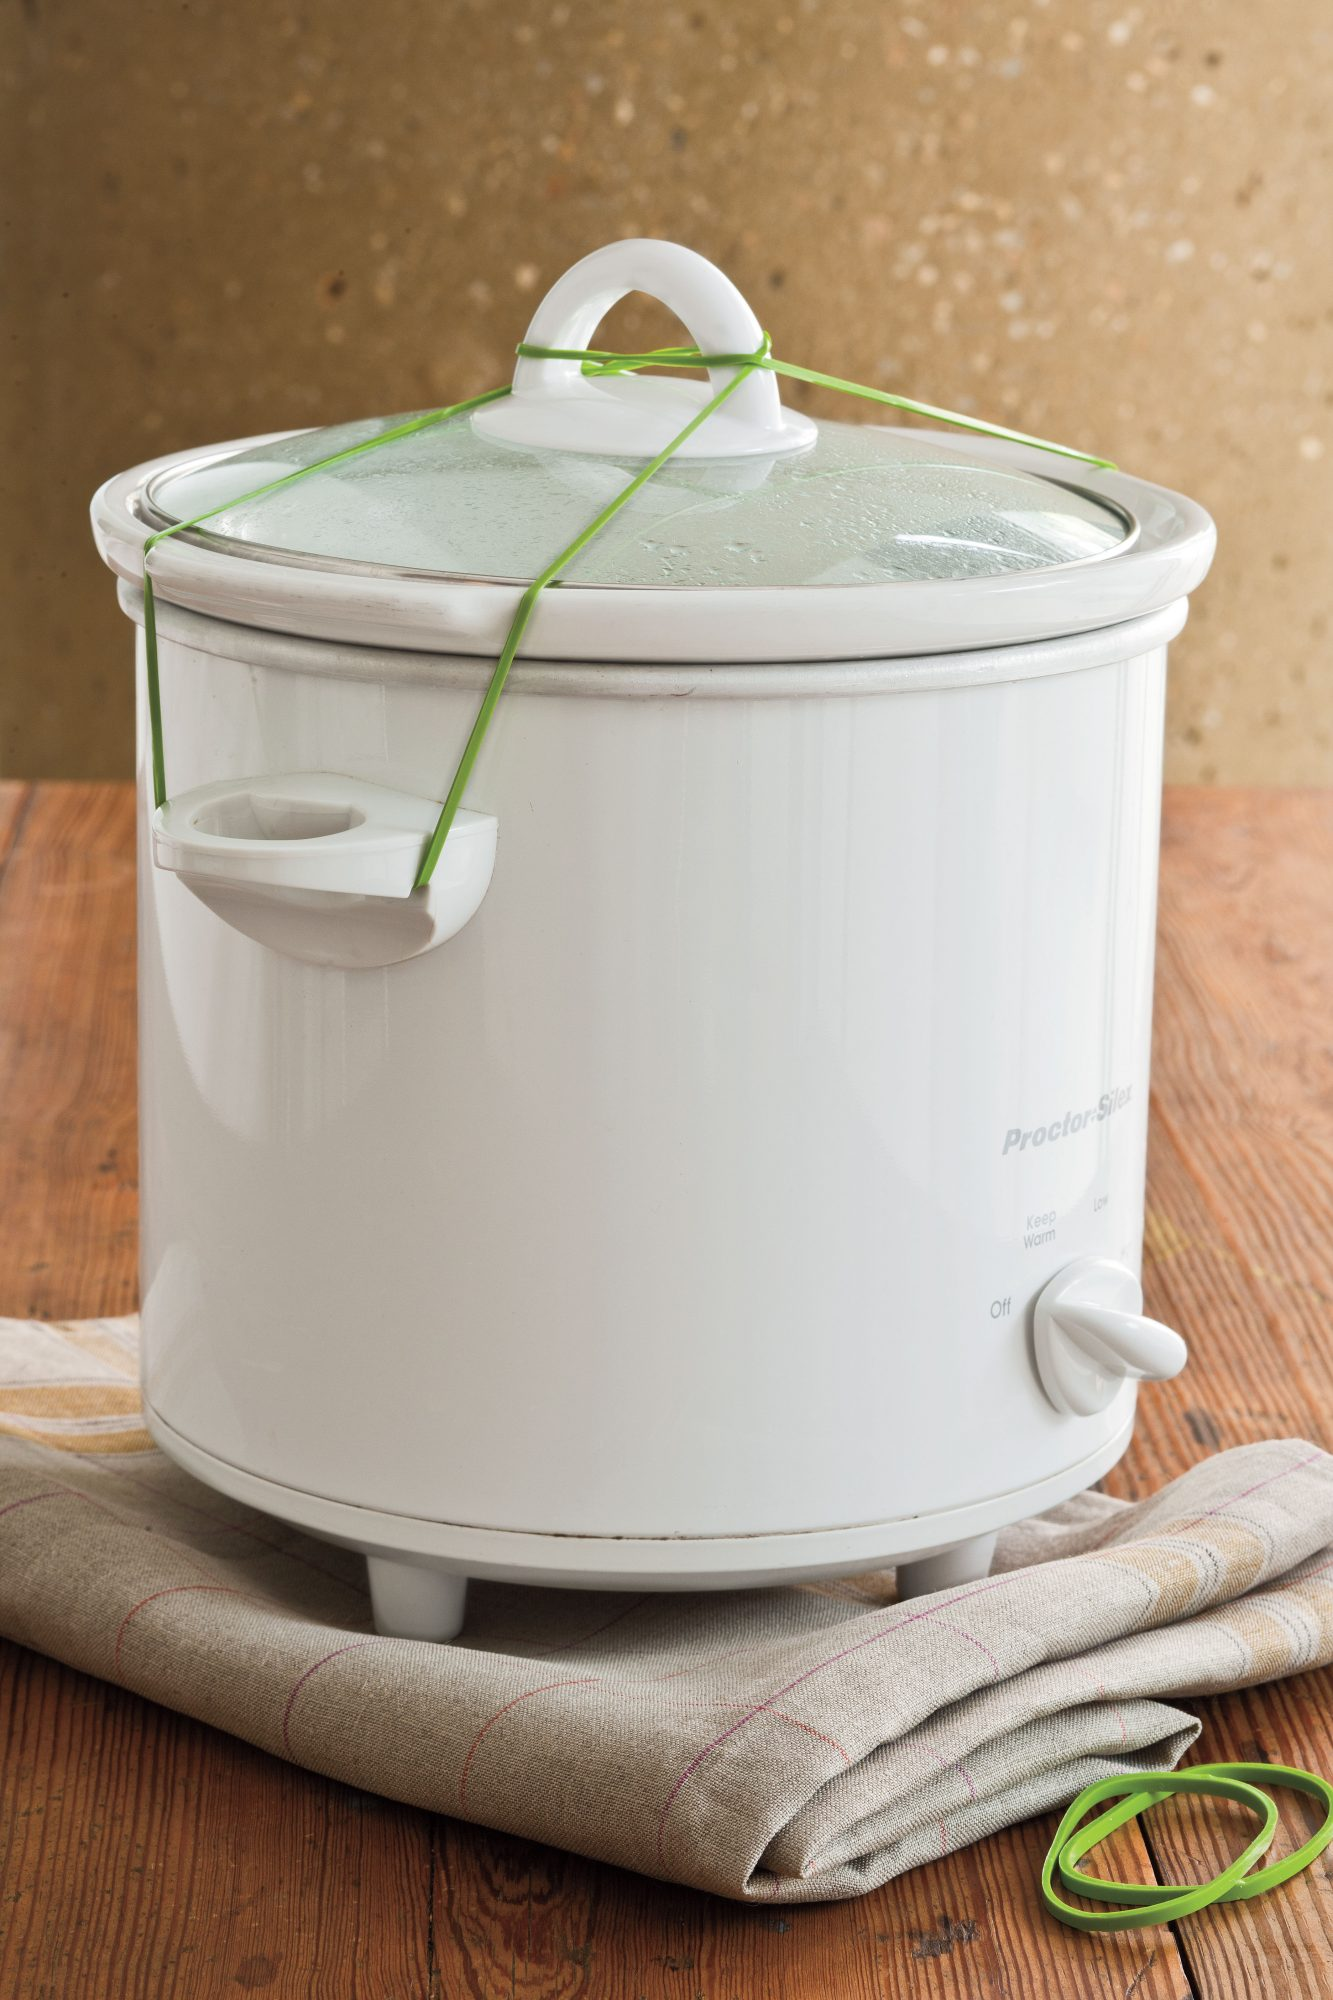 How to Travel With a Slow Cooker This Holiday Season